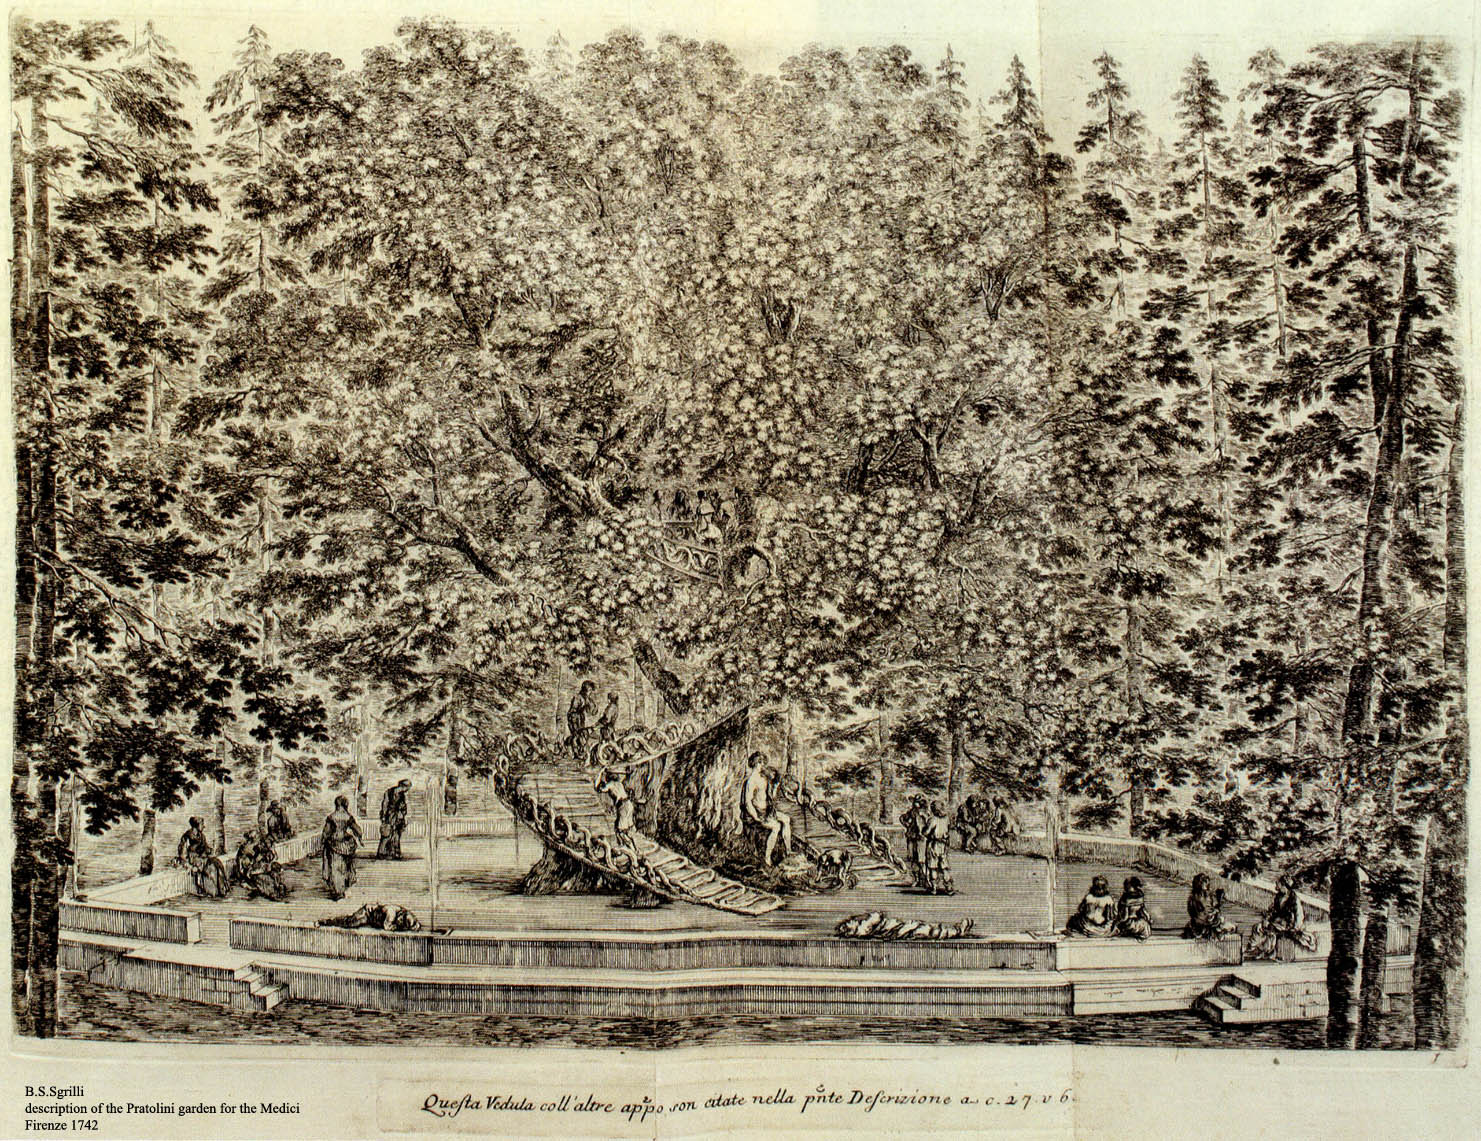 Black and white engraving, signed by Sgrilli, of large and unshaped tree with a wooden ramp from the ground up to the middle.  There is a person on the ramp.  Around it are benches with people sitting on them. This is the Pratolini Garden of the Medici in Florence, 1742.